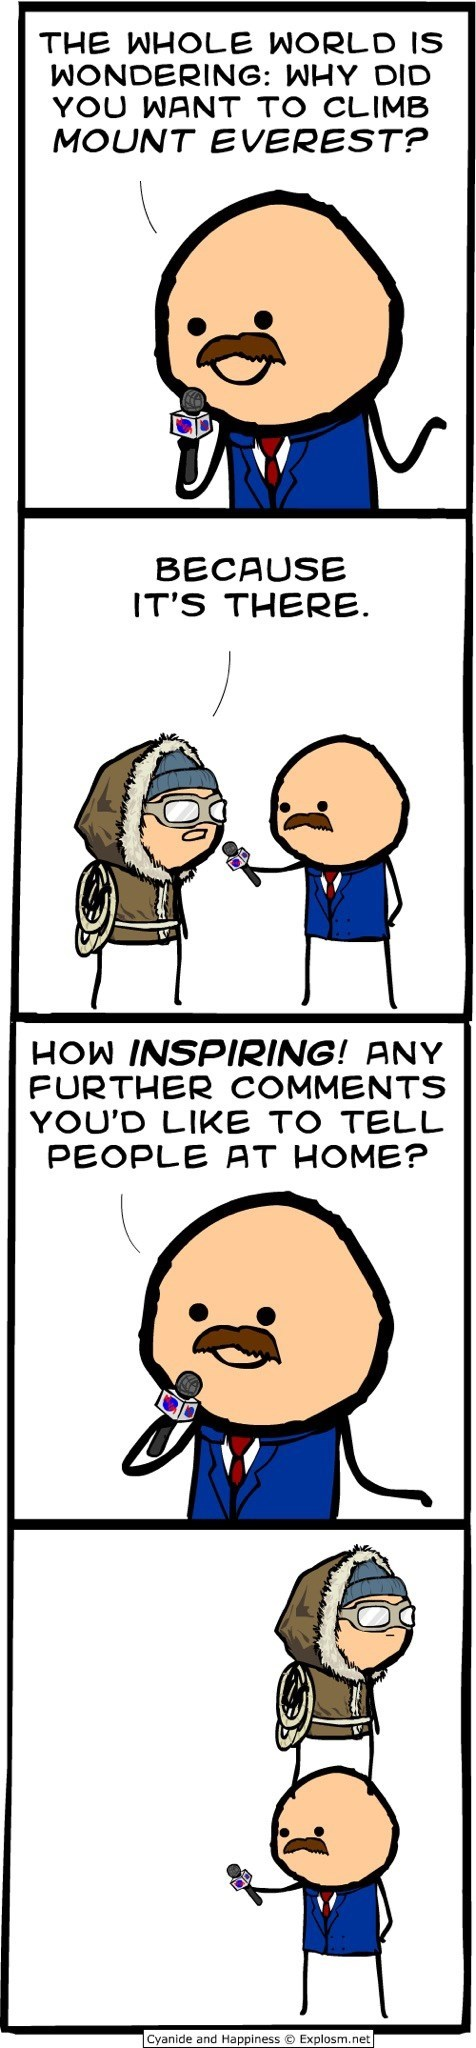 Cartoon - THE WHOLE WORLD IS WONDERING: WHY DID YOU WANT TO CLIMB MOUNT EVEREST? BECAUSE IT'S THERE. HOW INSPIRING! ANY FURTHER COMMENTS YOU'D LIKE TO TELL PEOPLE AT HOME? Cyanide and Happiness © Explosm.net